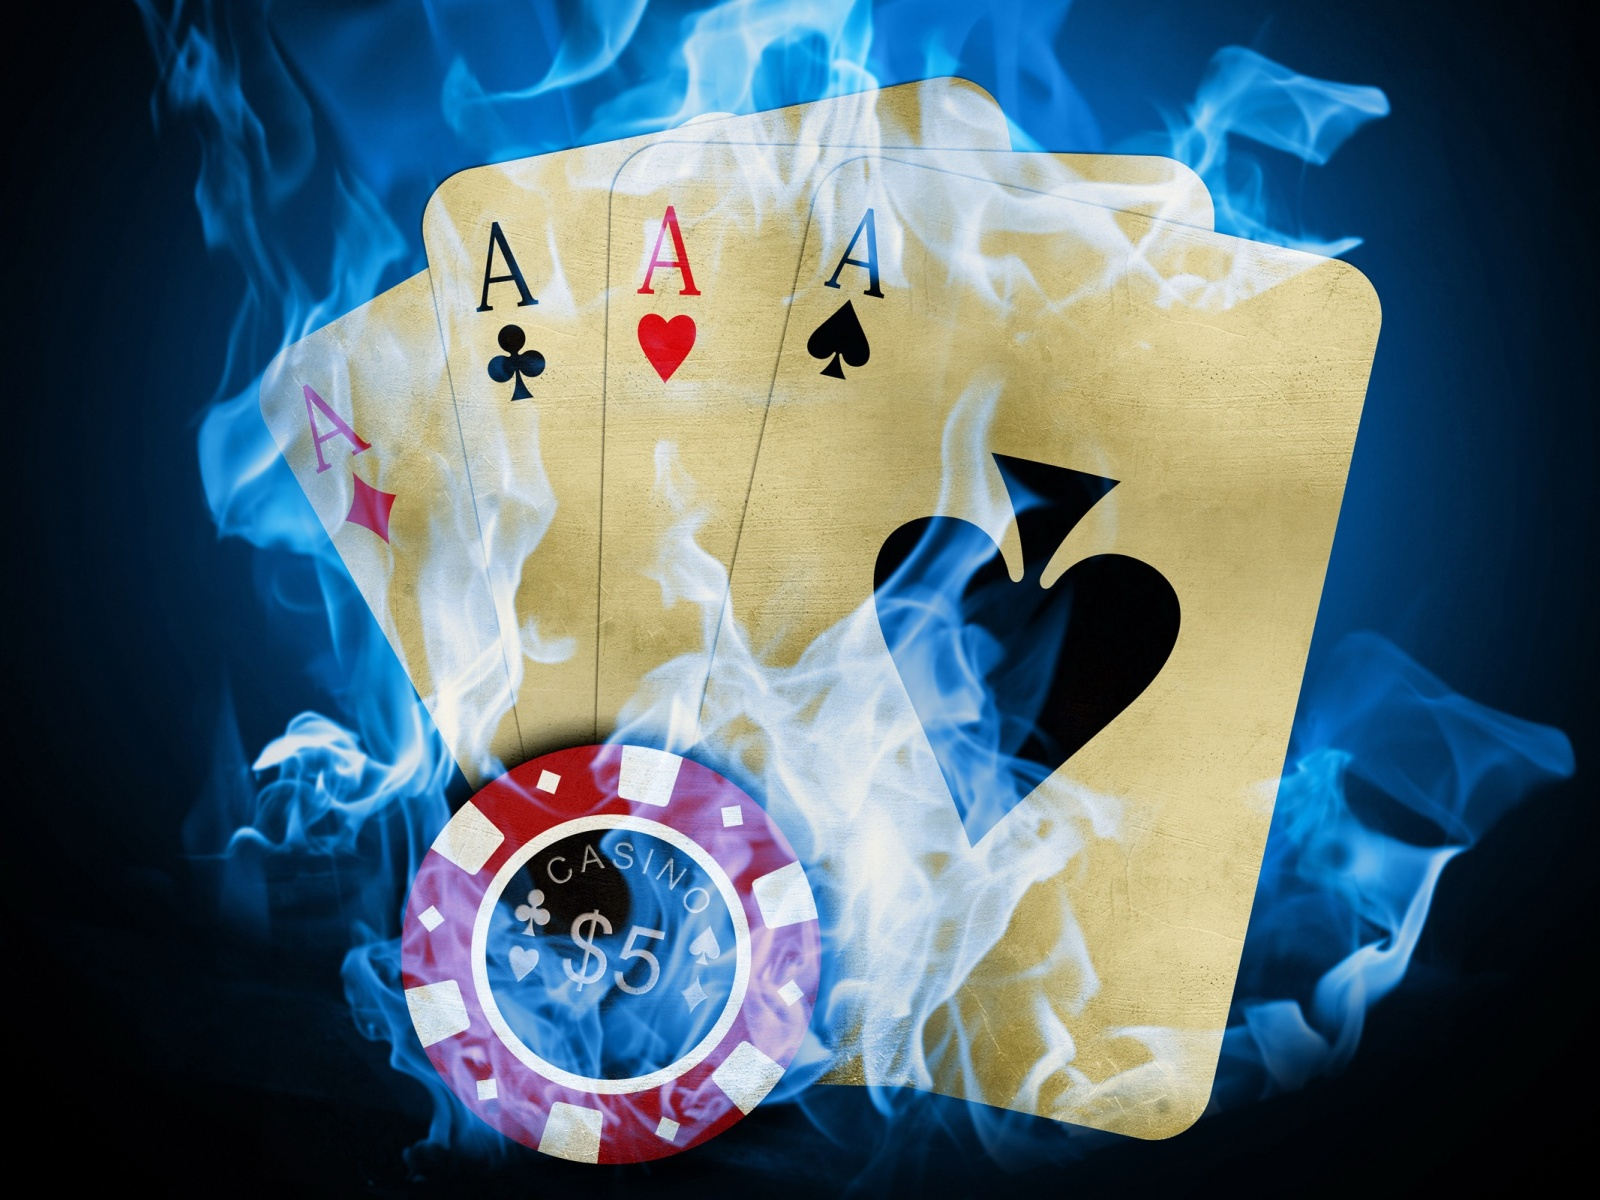 Casino poker aces Wallpaper in 1600x1200 Normal